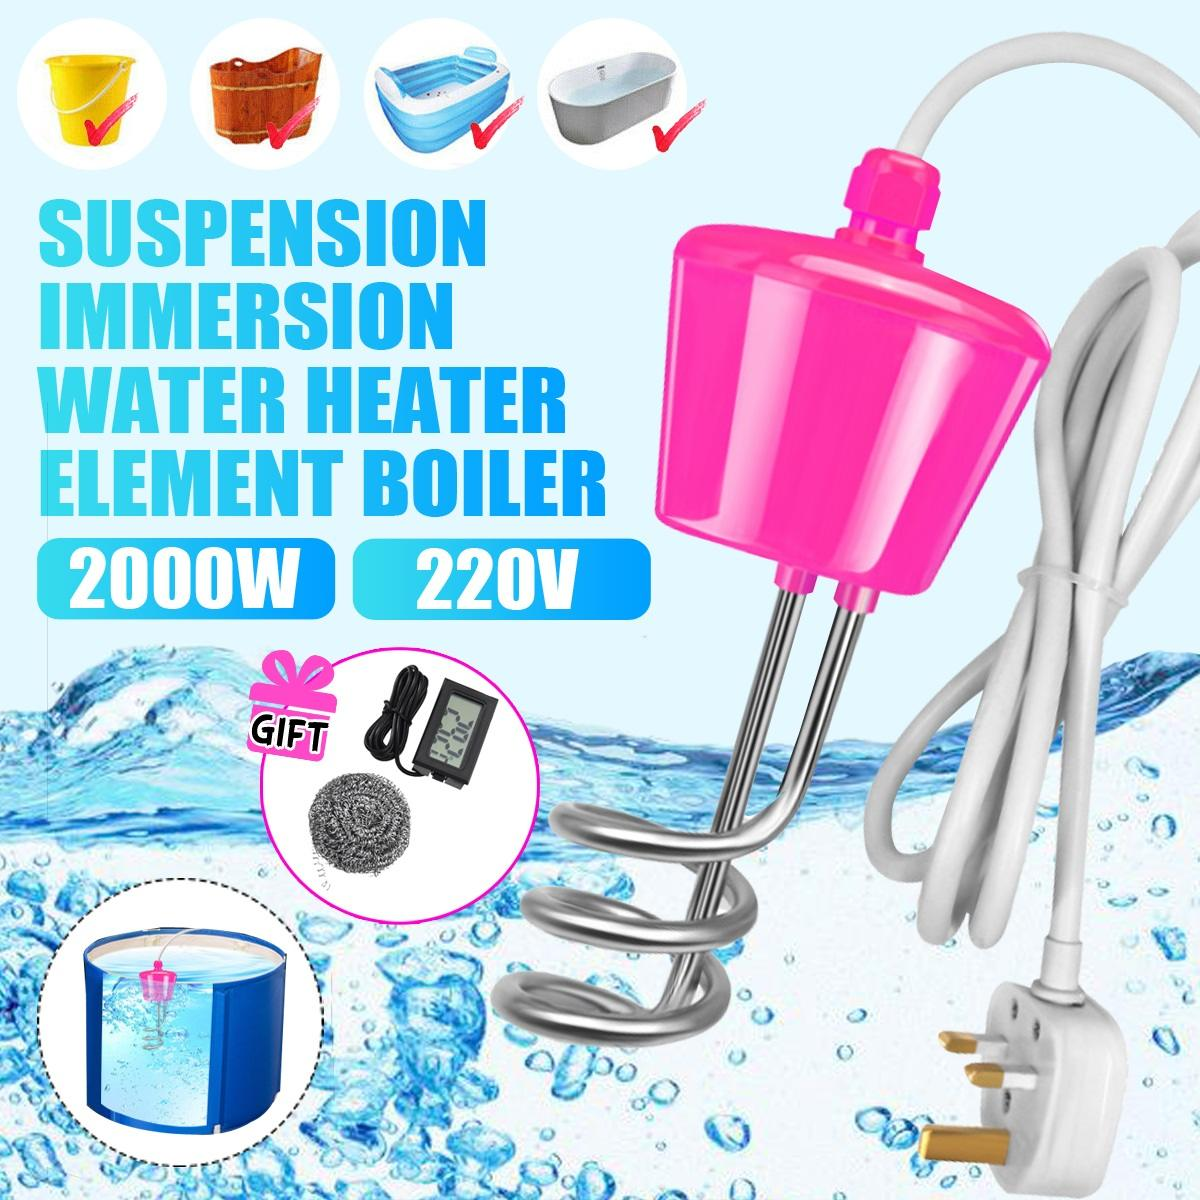 2000W Electric Floating Heater Boiler Water Heating Element Portable Immersion Suspension Bathroom Swimming Pool UK Plug